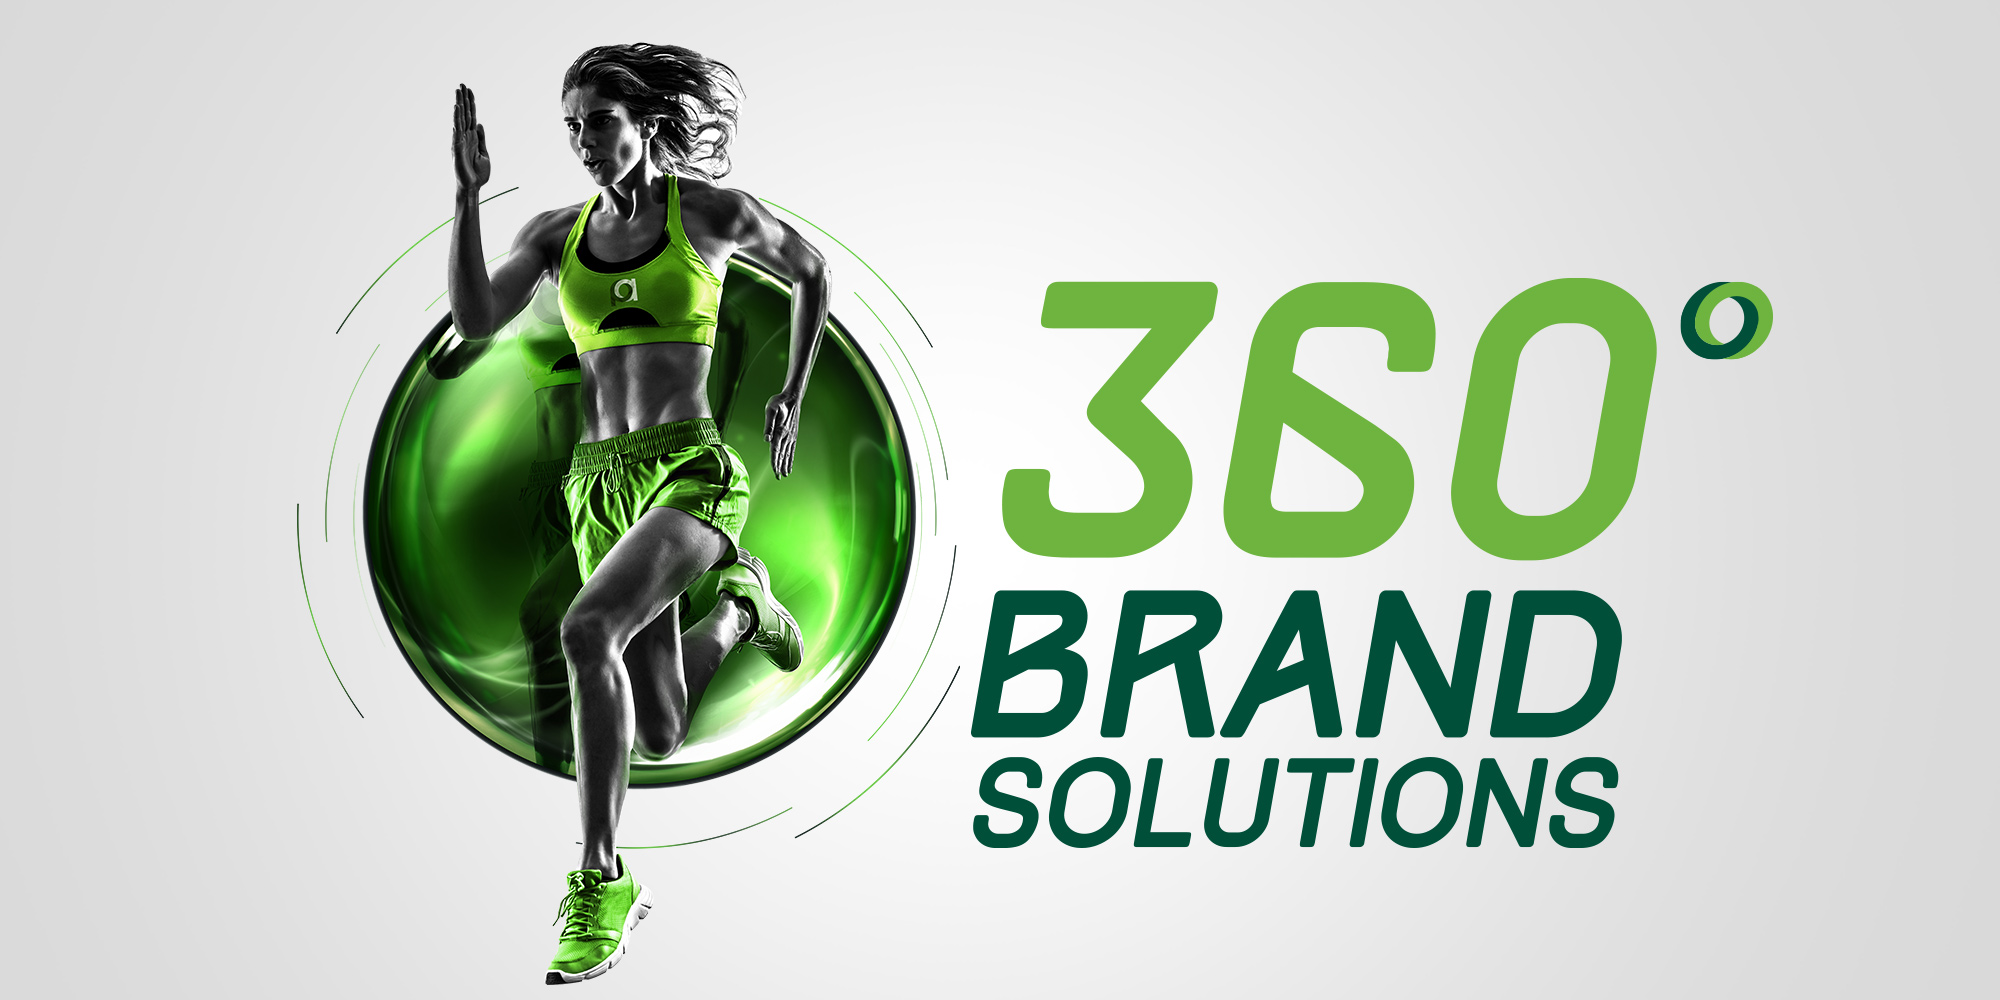 360 Brand Solutions